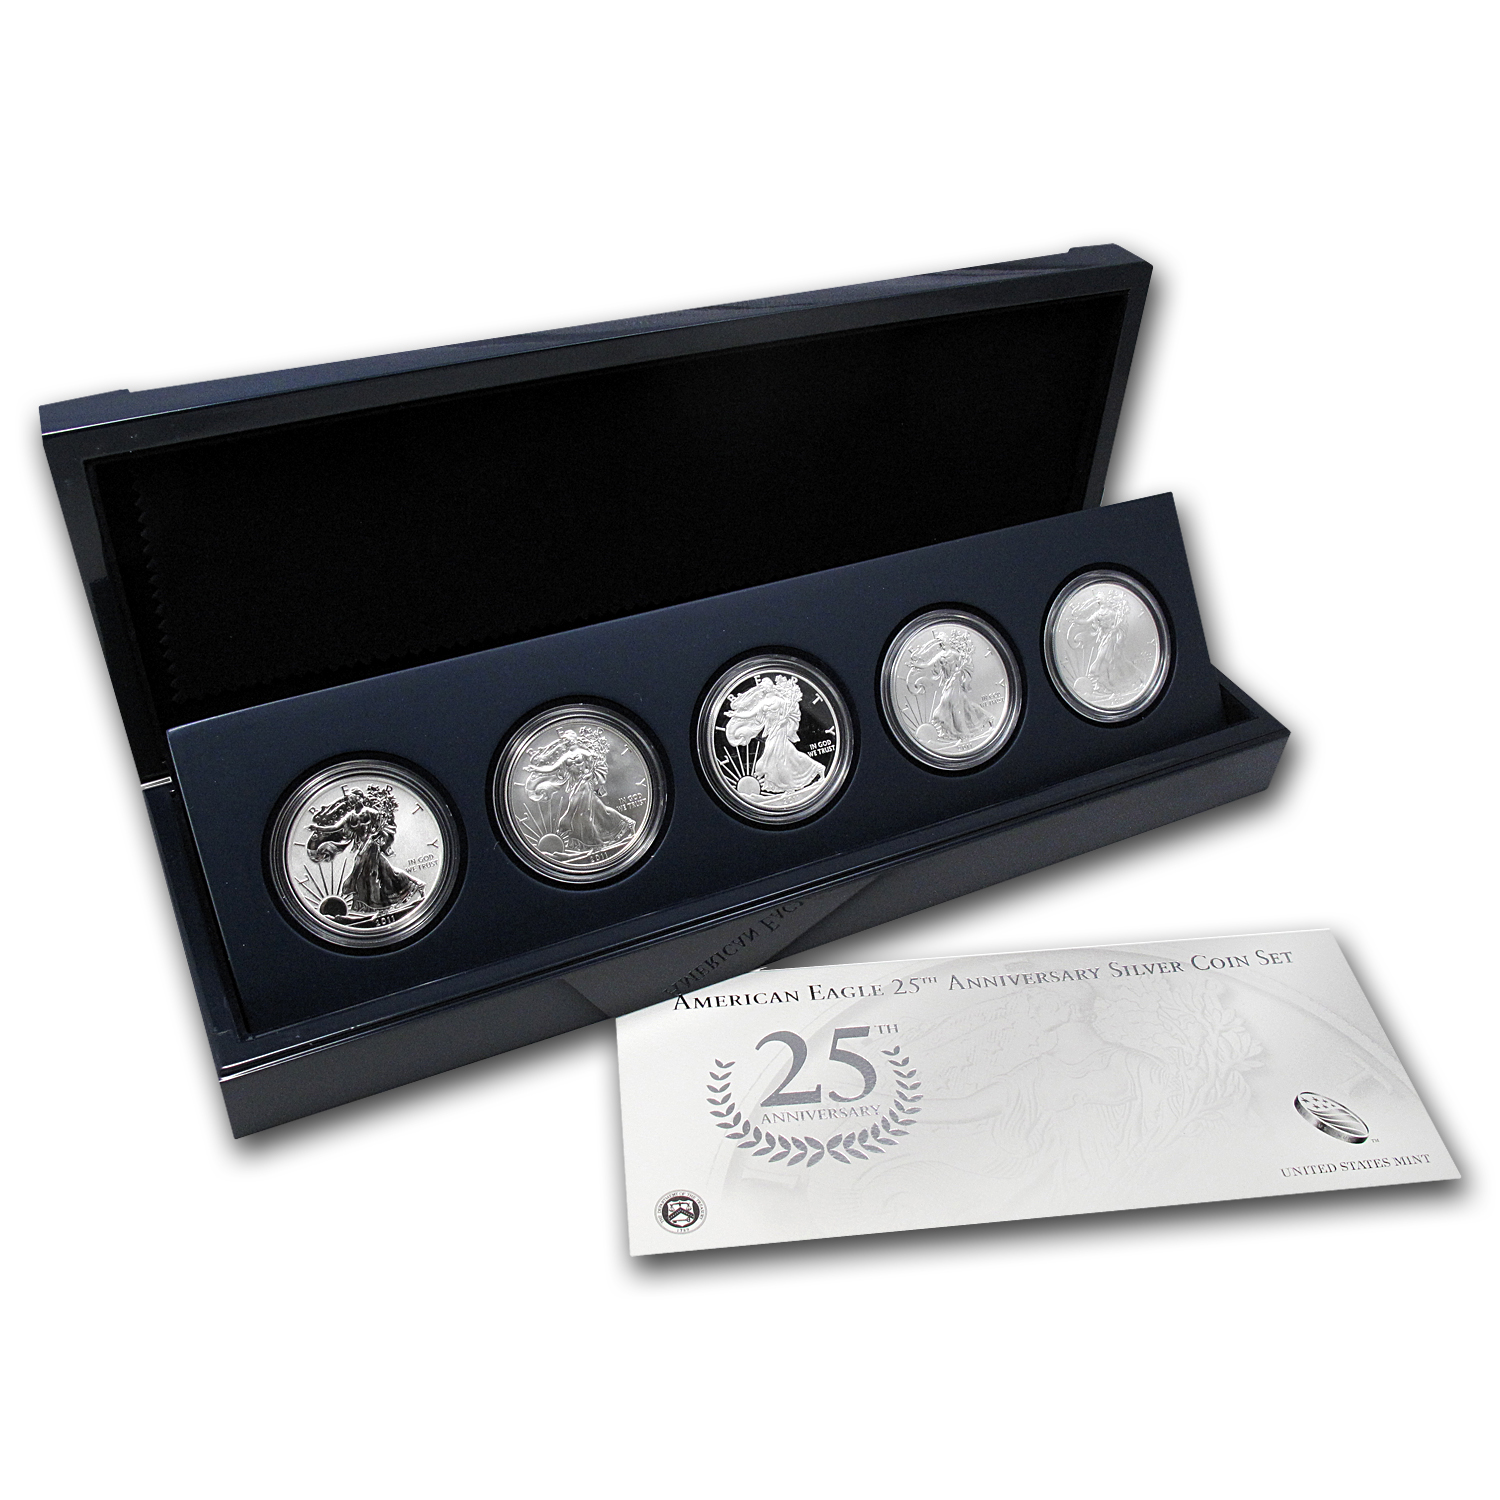 2011 5-Coin Silver American Eagle Set (25th Anniv, w/Box & COA)